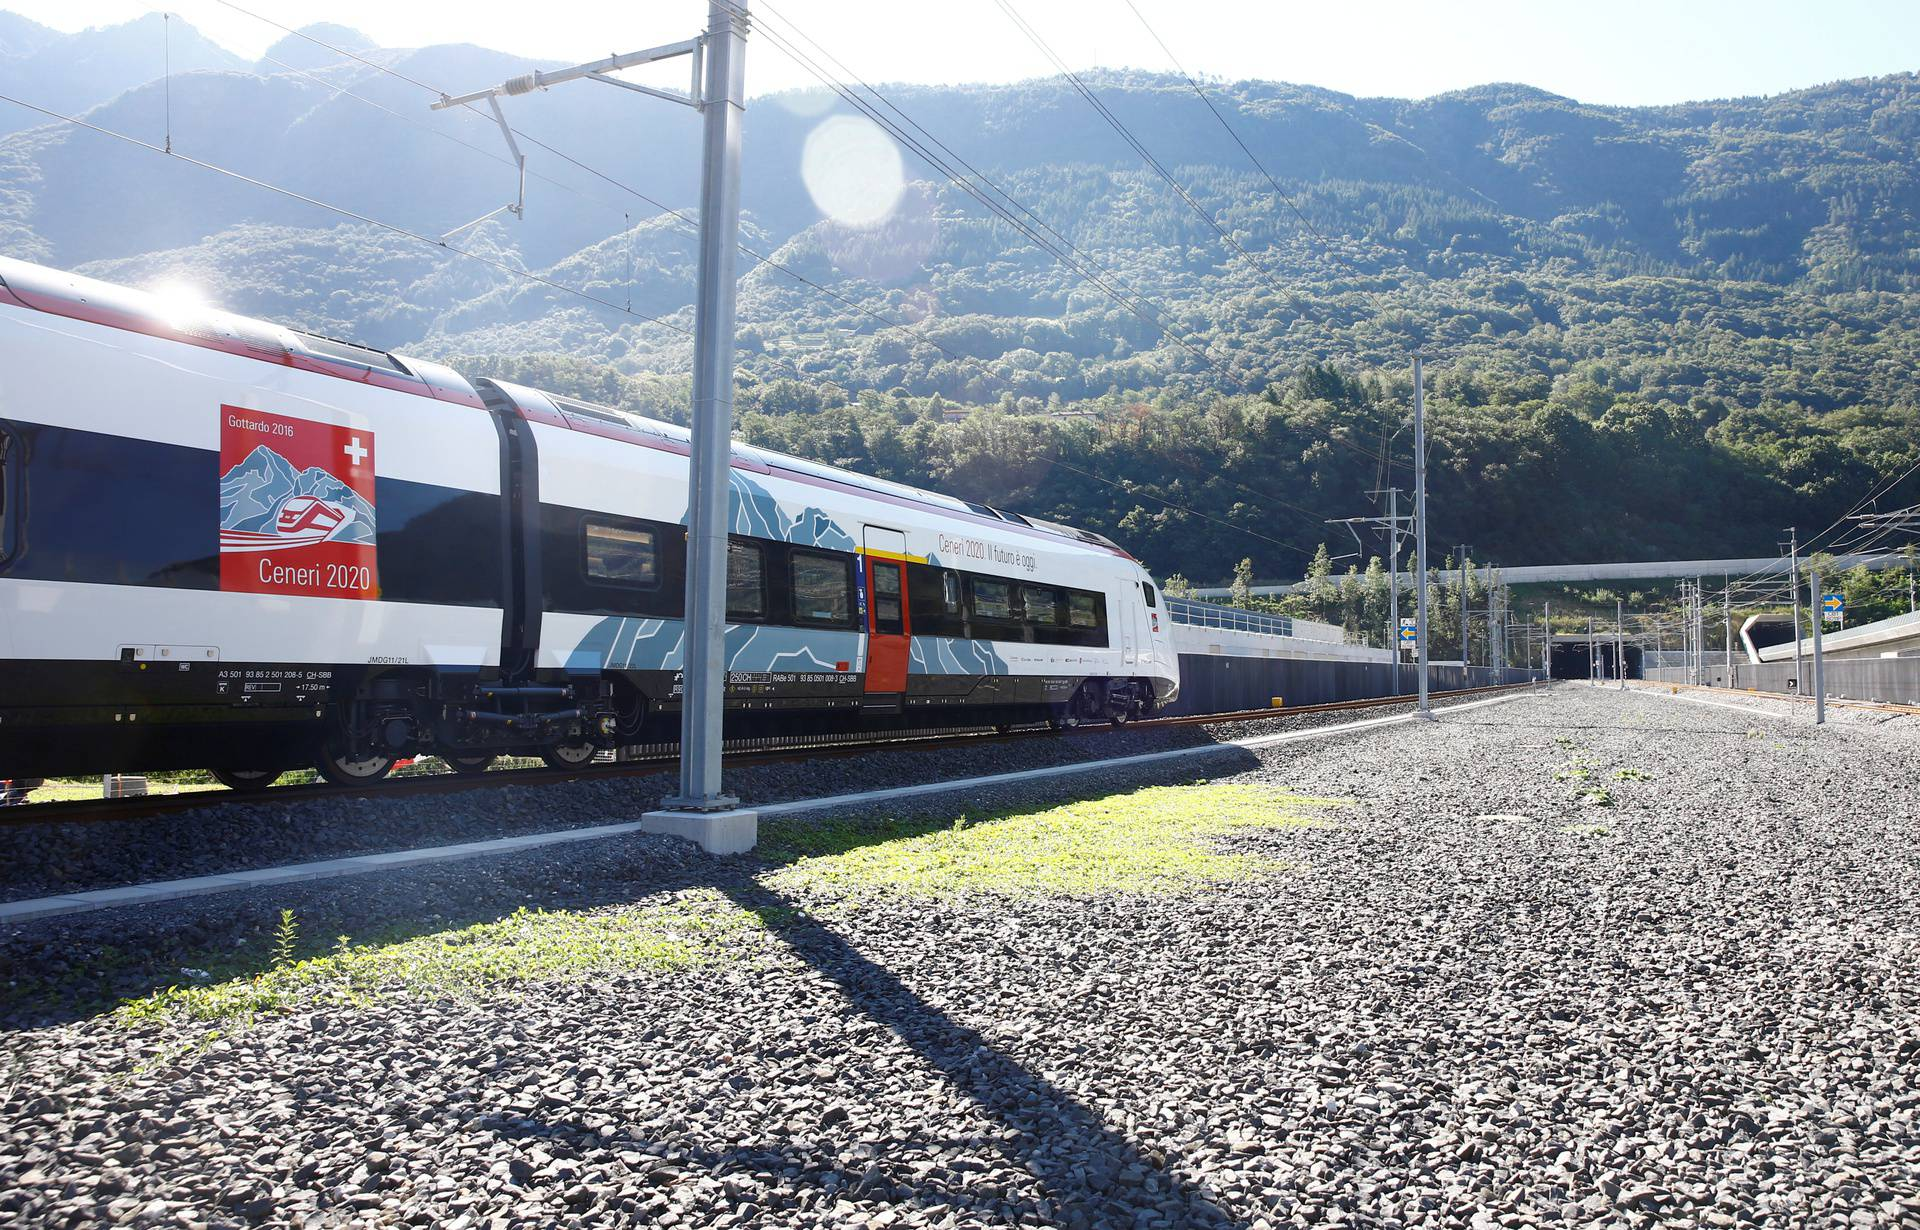 Train stands in front of the entrances of the newly built Ceneri Base Tunnel near Camorino